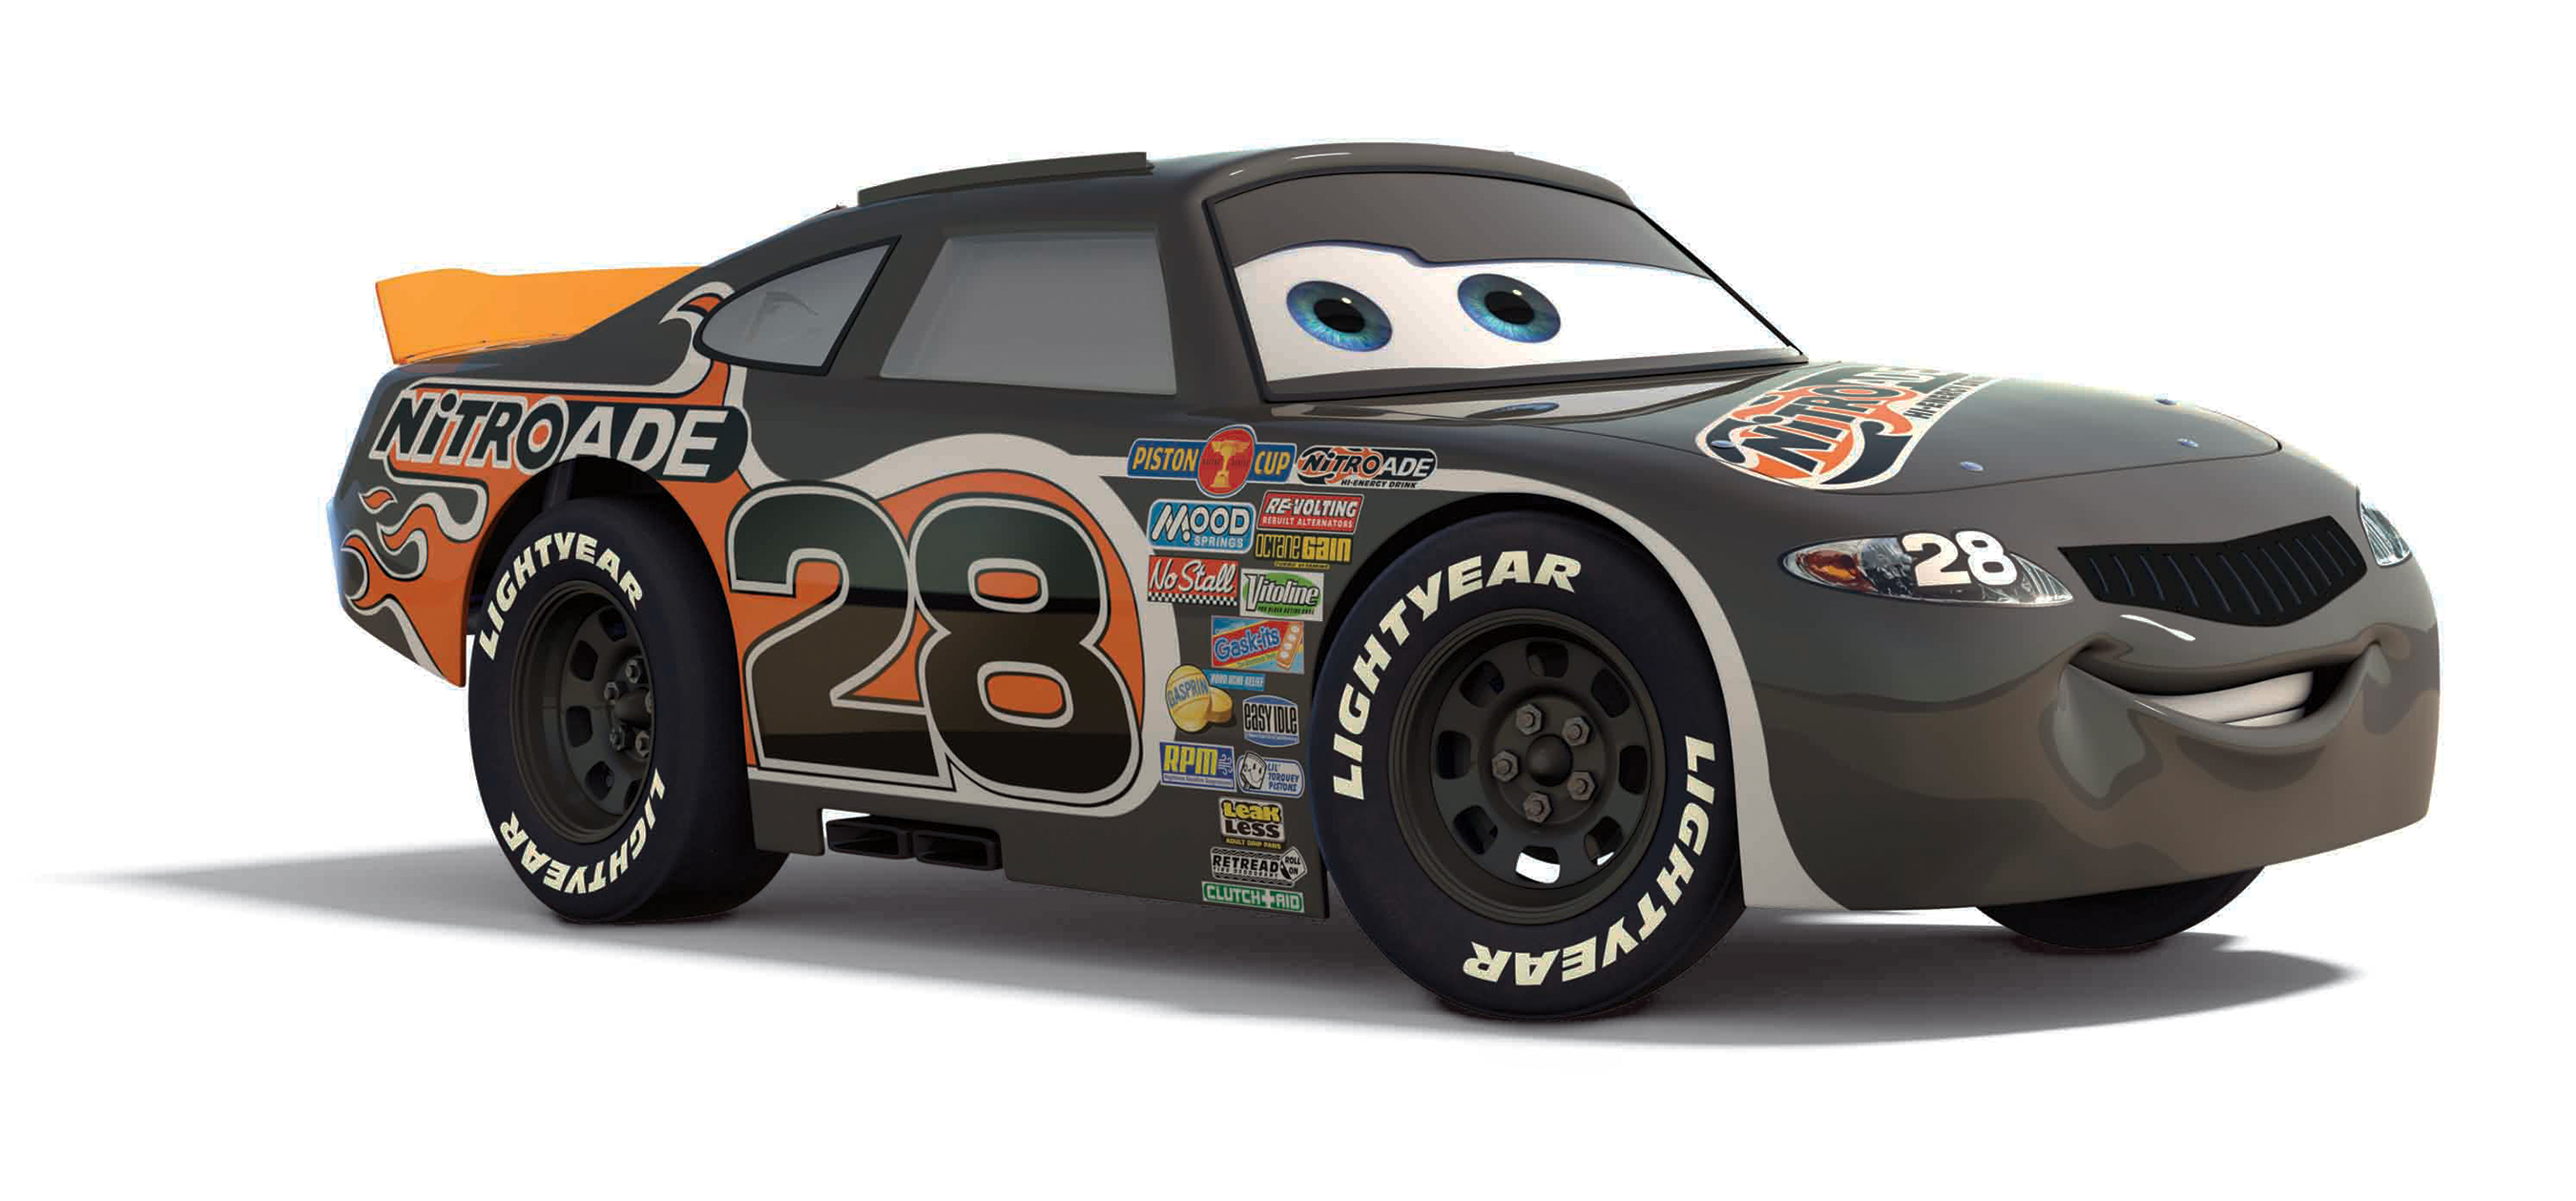 Richard Petty Experience Adds a Touch of Pixar With Junior Ride Along